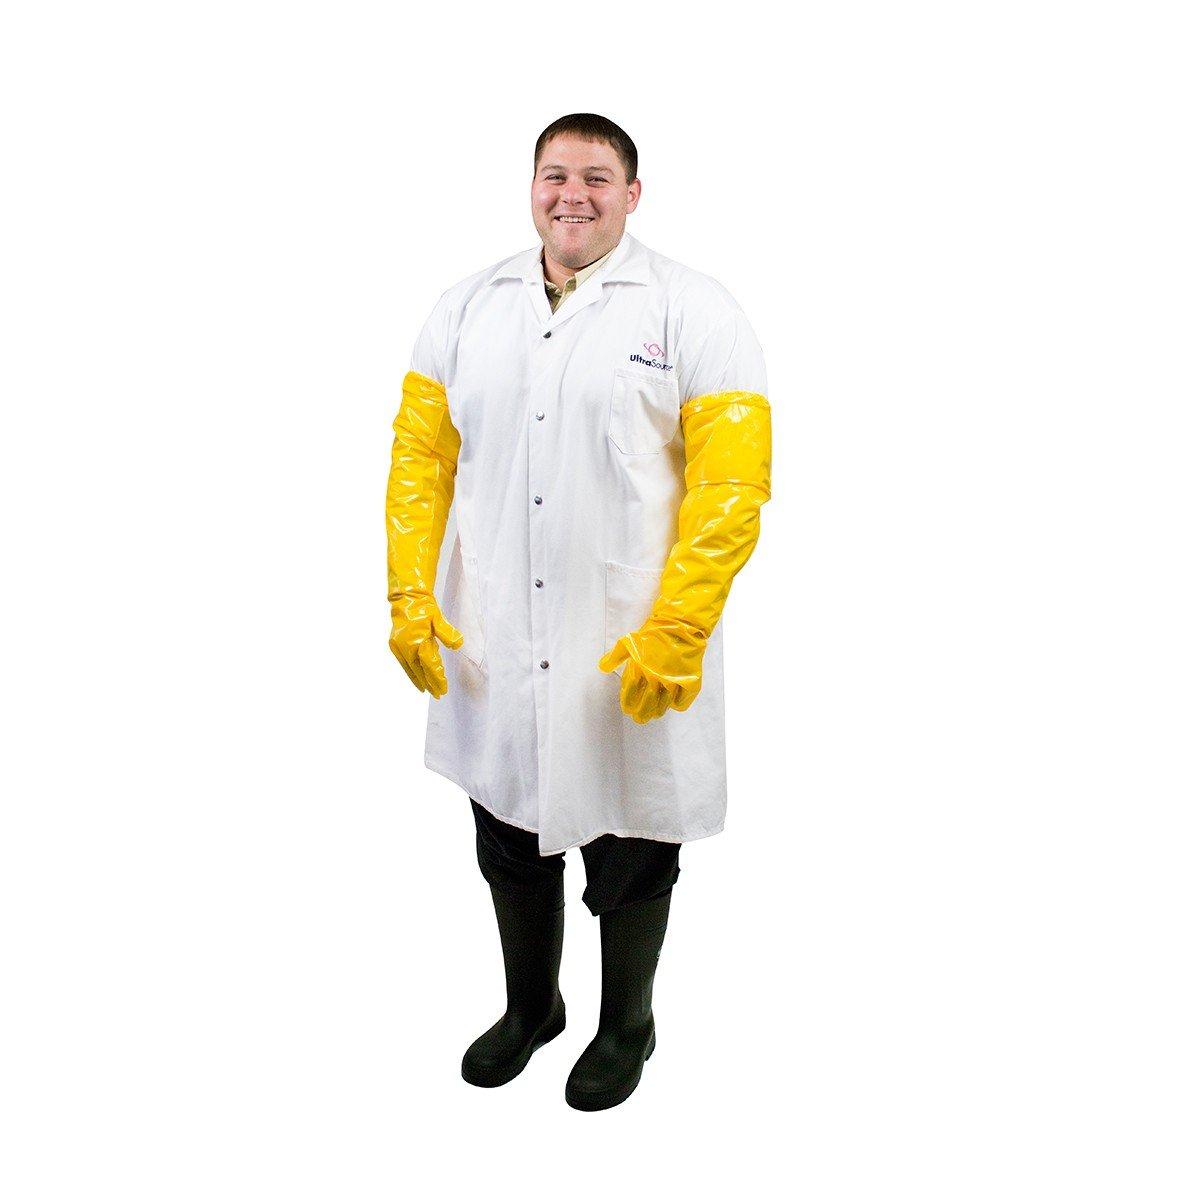 UltraSource Polyurethane Chemical Resistant Gloves, 27'' Arm Length, 6 mil, Yellow (Pair)